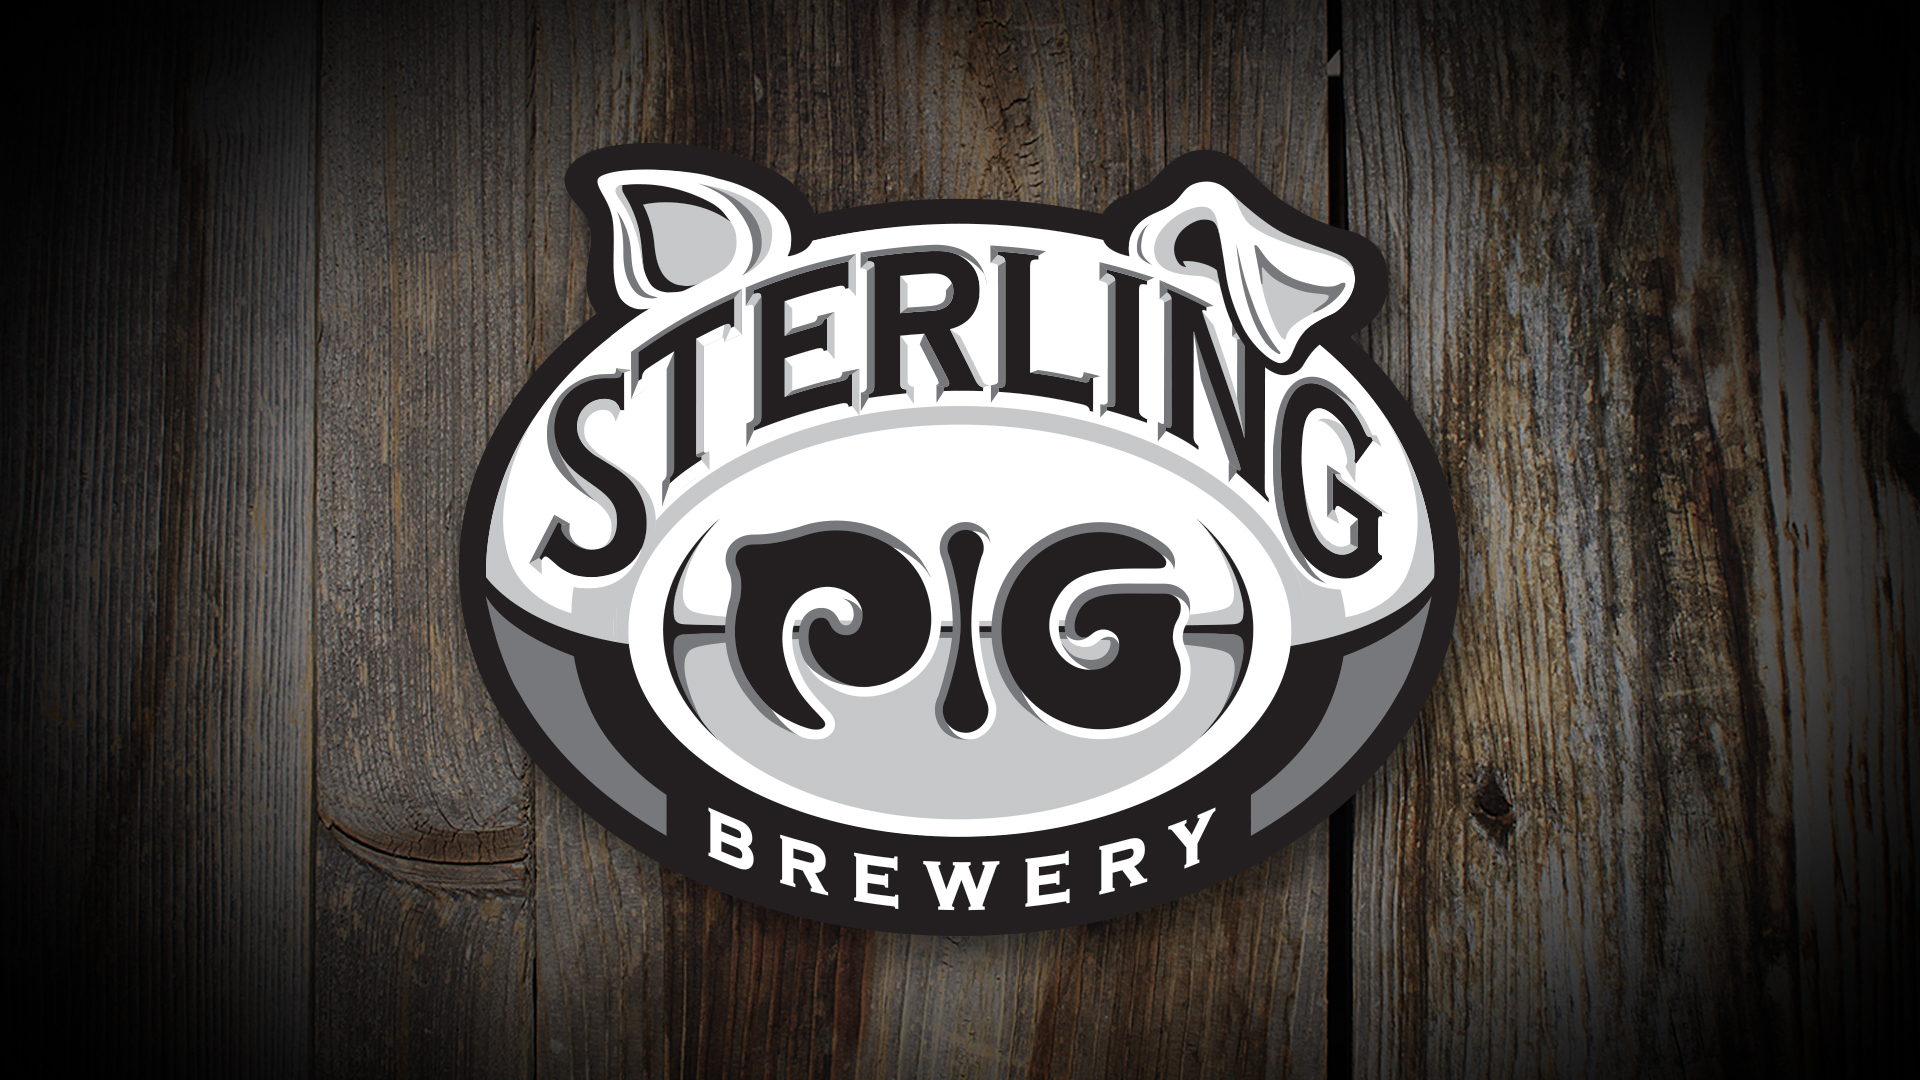 Sterling Pig Brewery Fall Kick Off Party at South Philadelphia Tap Room